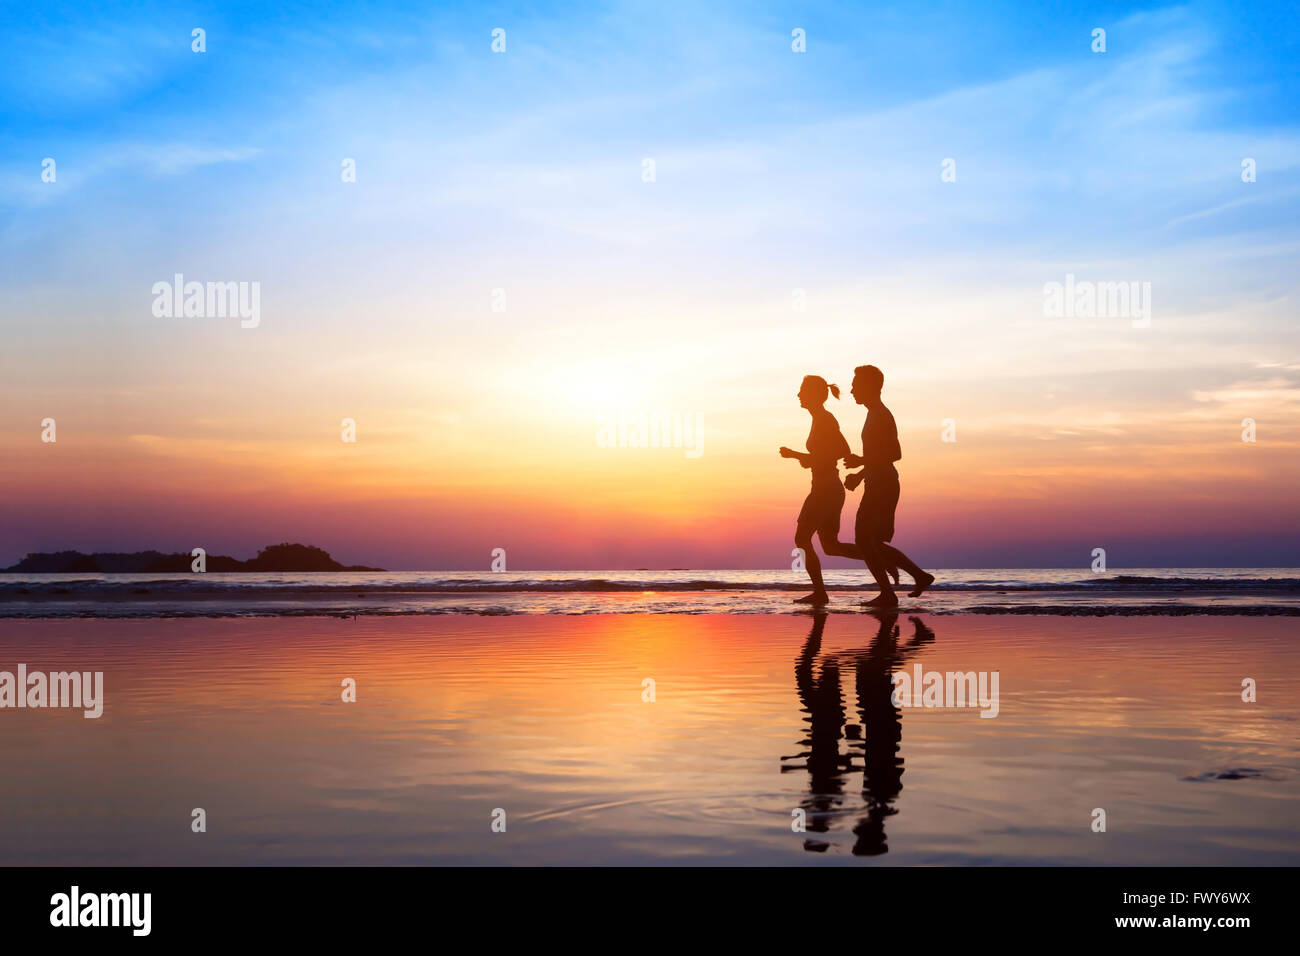 workout background, two people jogging on the beach at sunset, runners silhouettes, healthy lifestyle concept - Stock Image